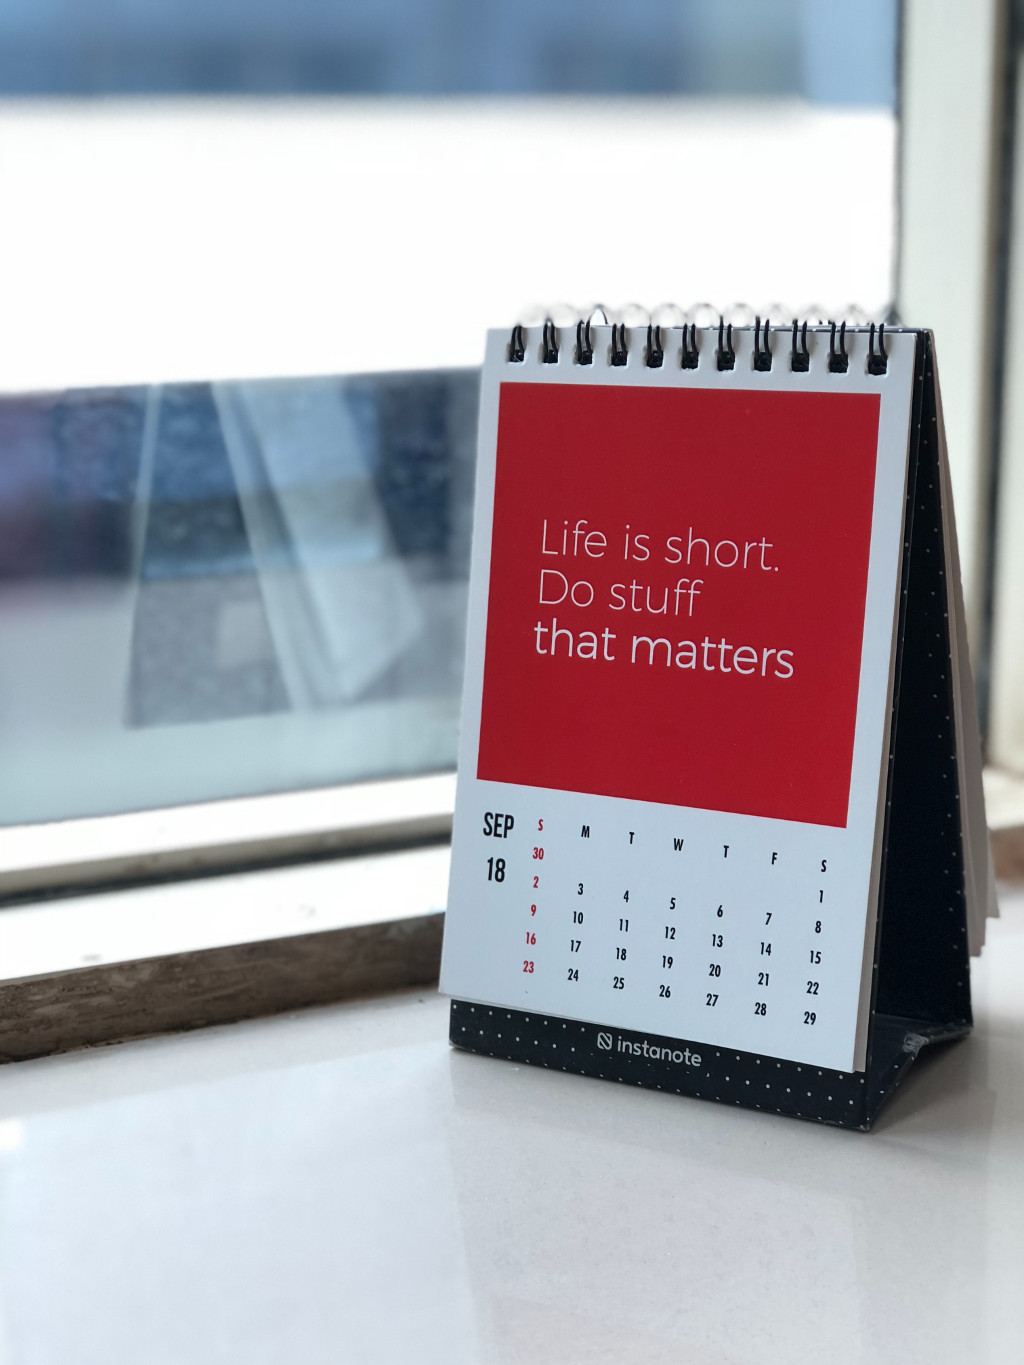 Spruch: Life is short. Do stuff that matters.